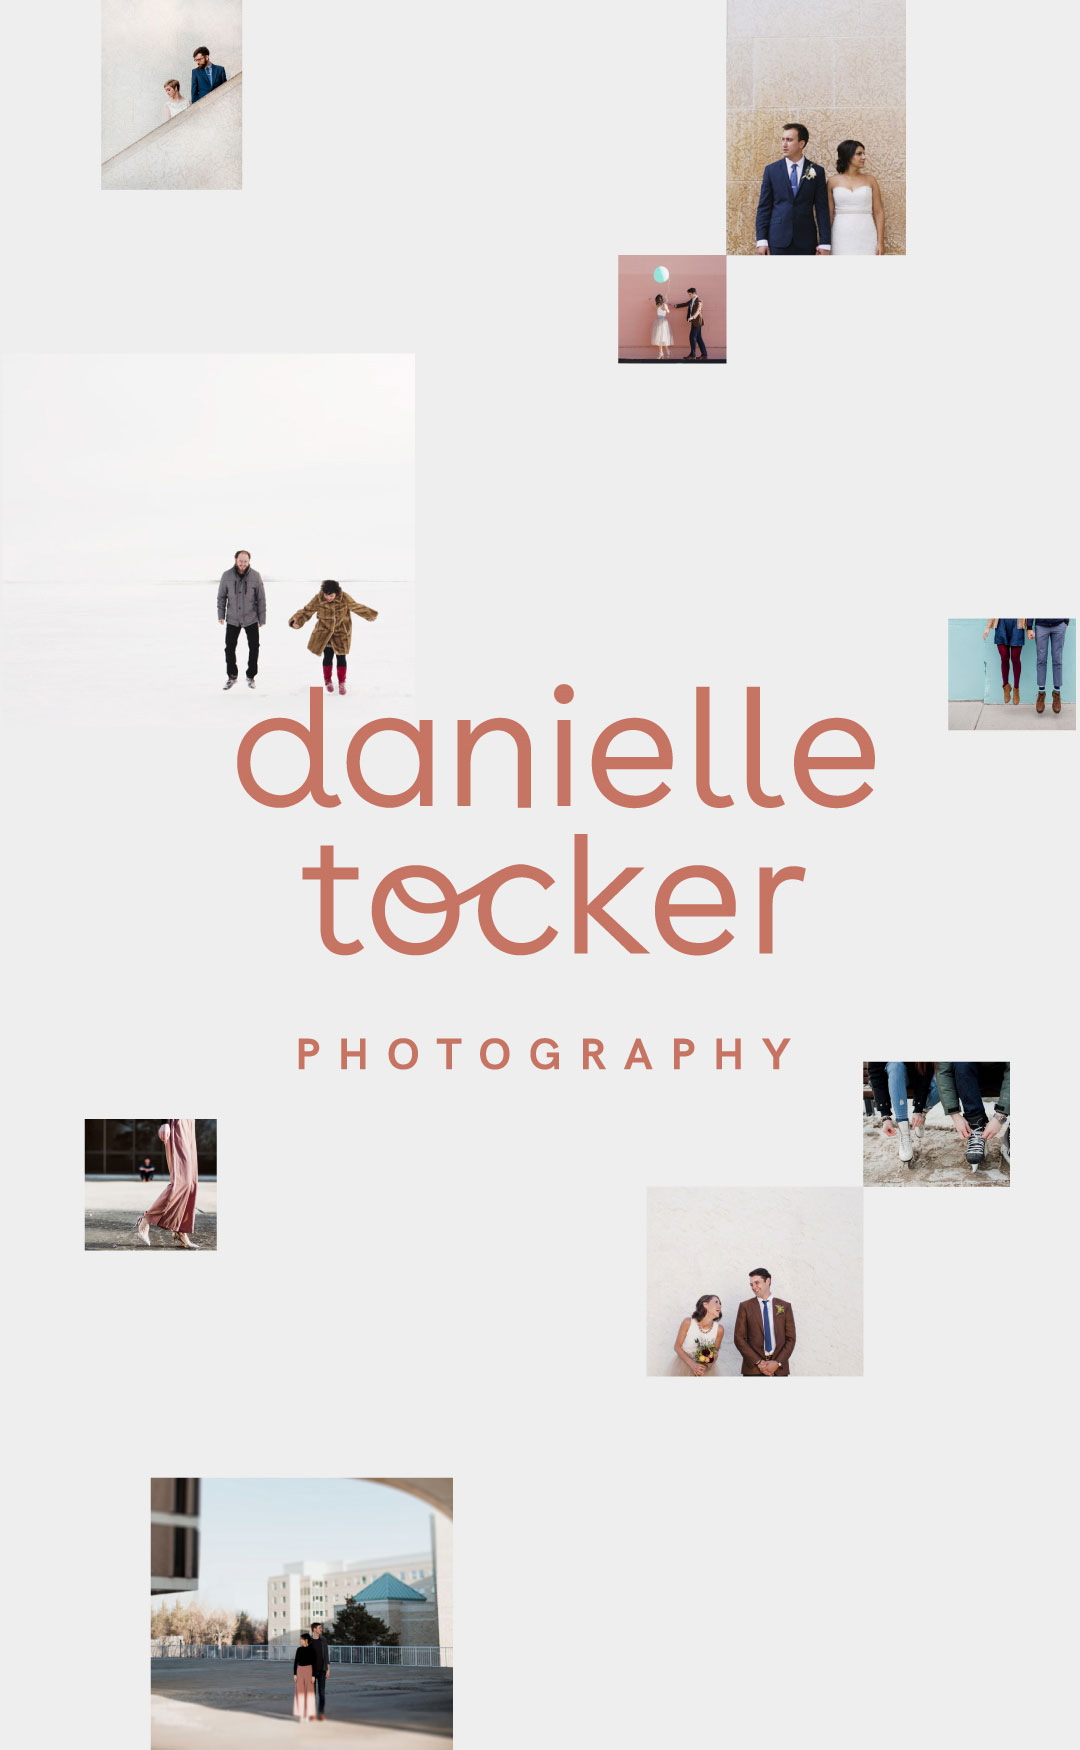 Danielle Tocker Photography Logo Design and Branding | www.alicia-carvalho.com